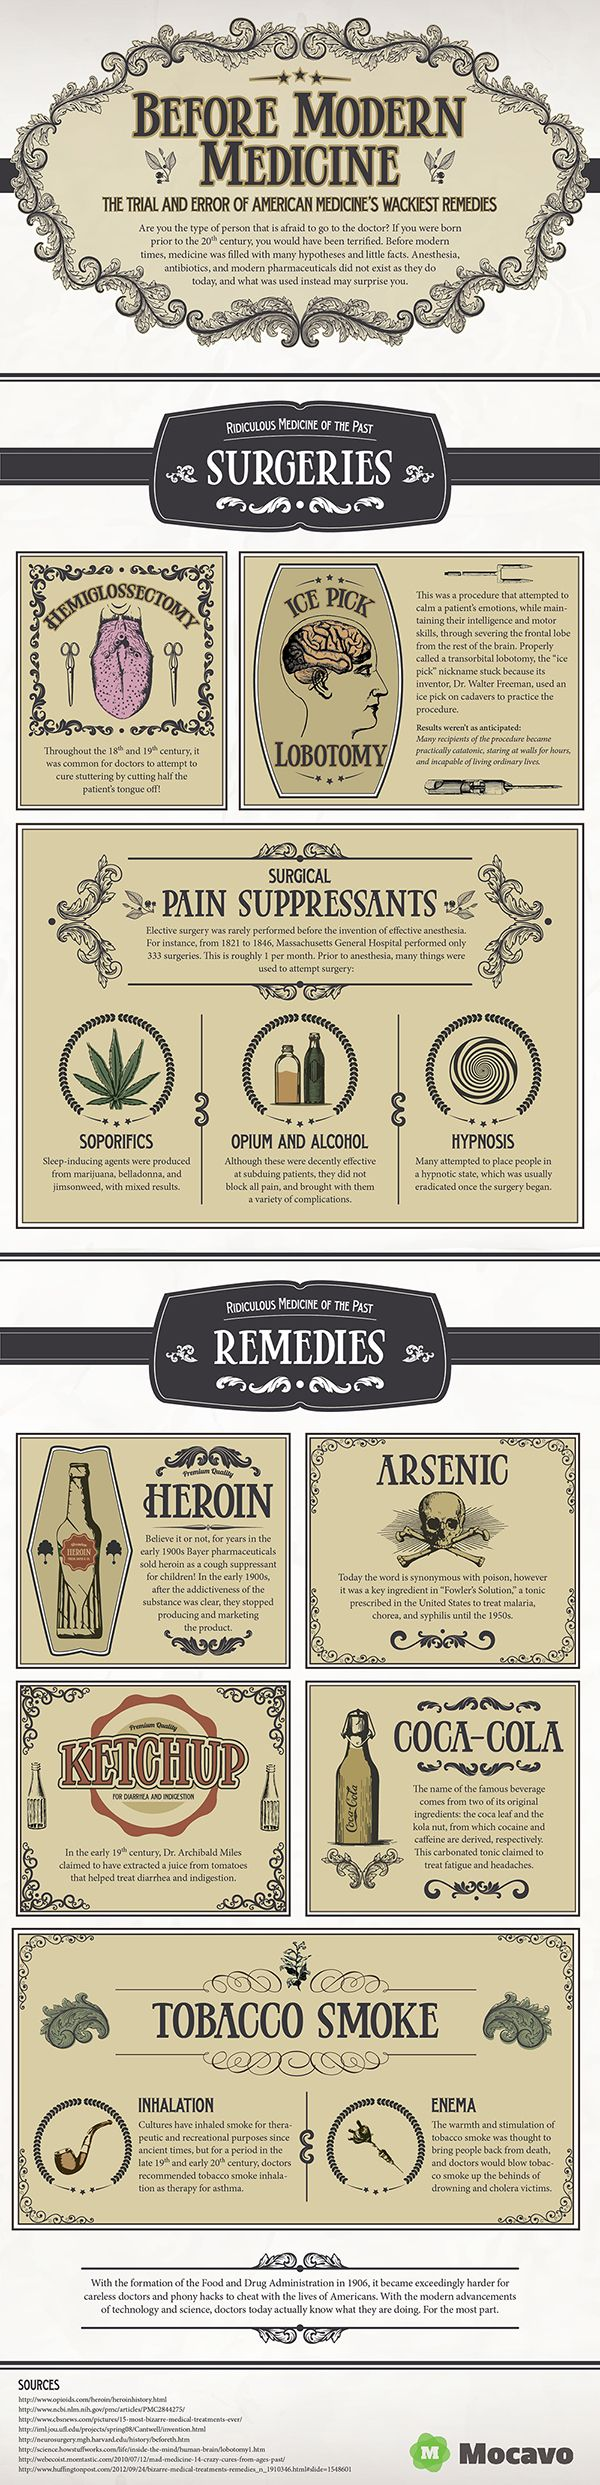 """We at Mocavo have put together this infographic to show you some interesting medical practices of the past."""